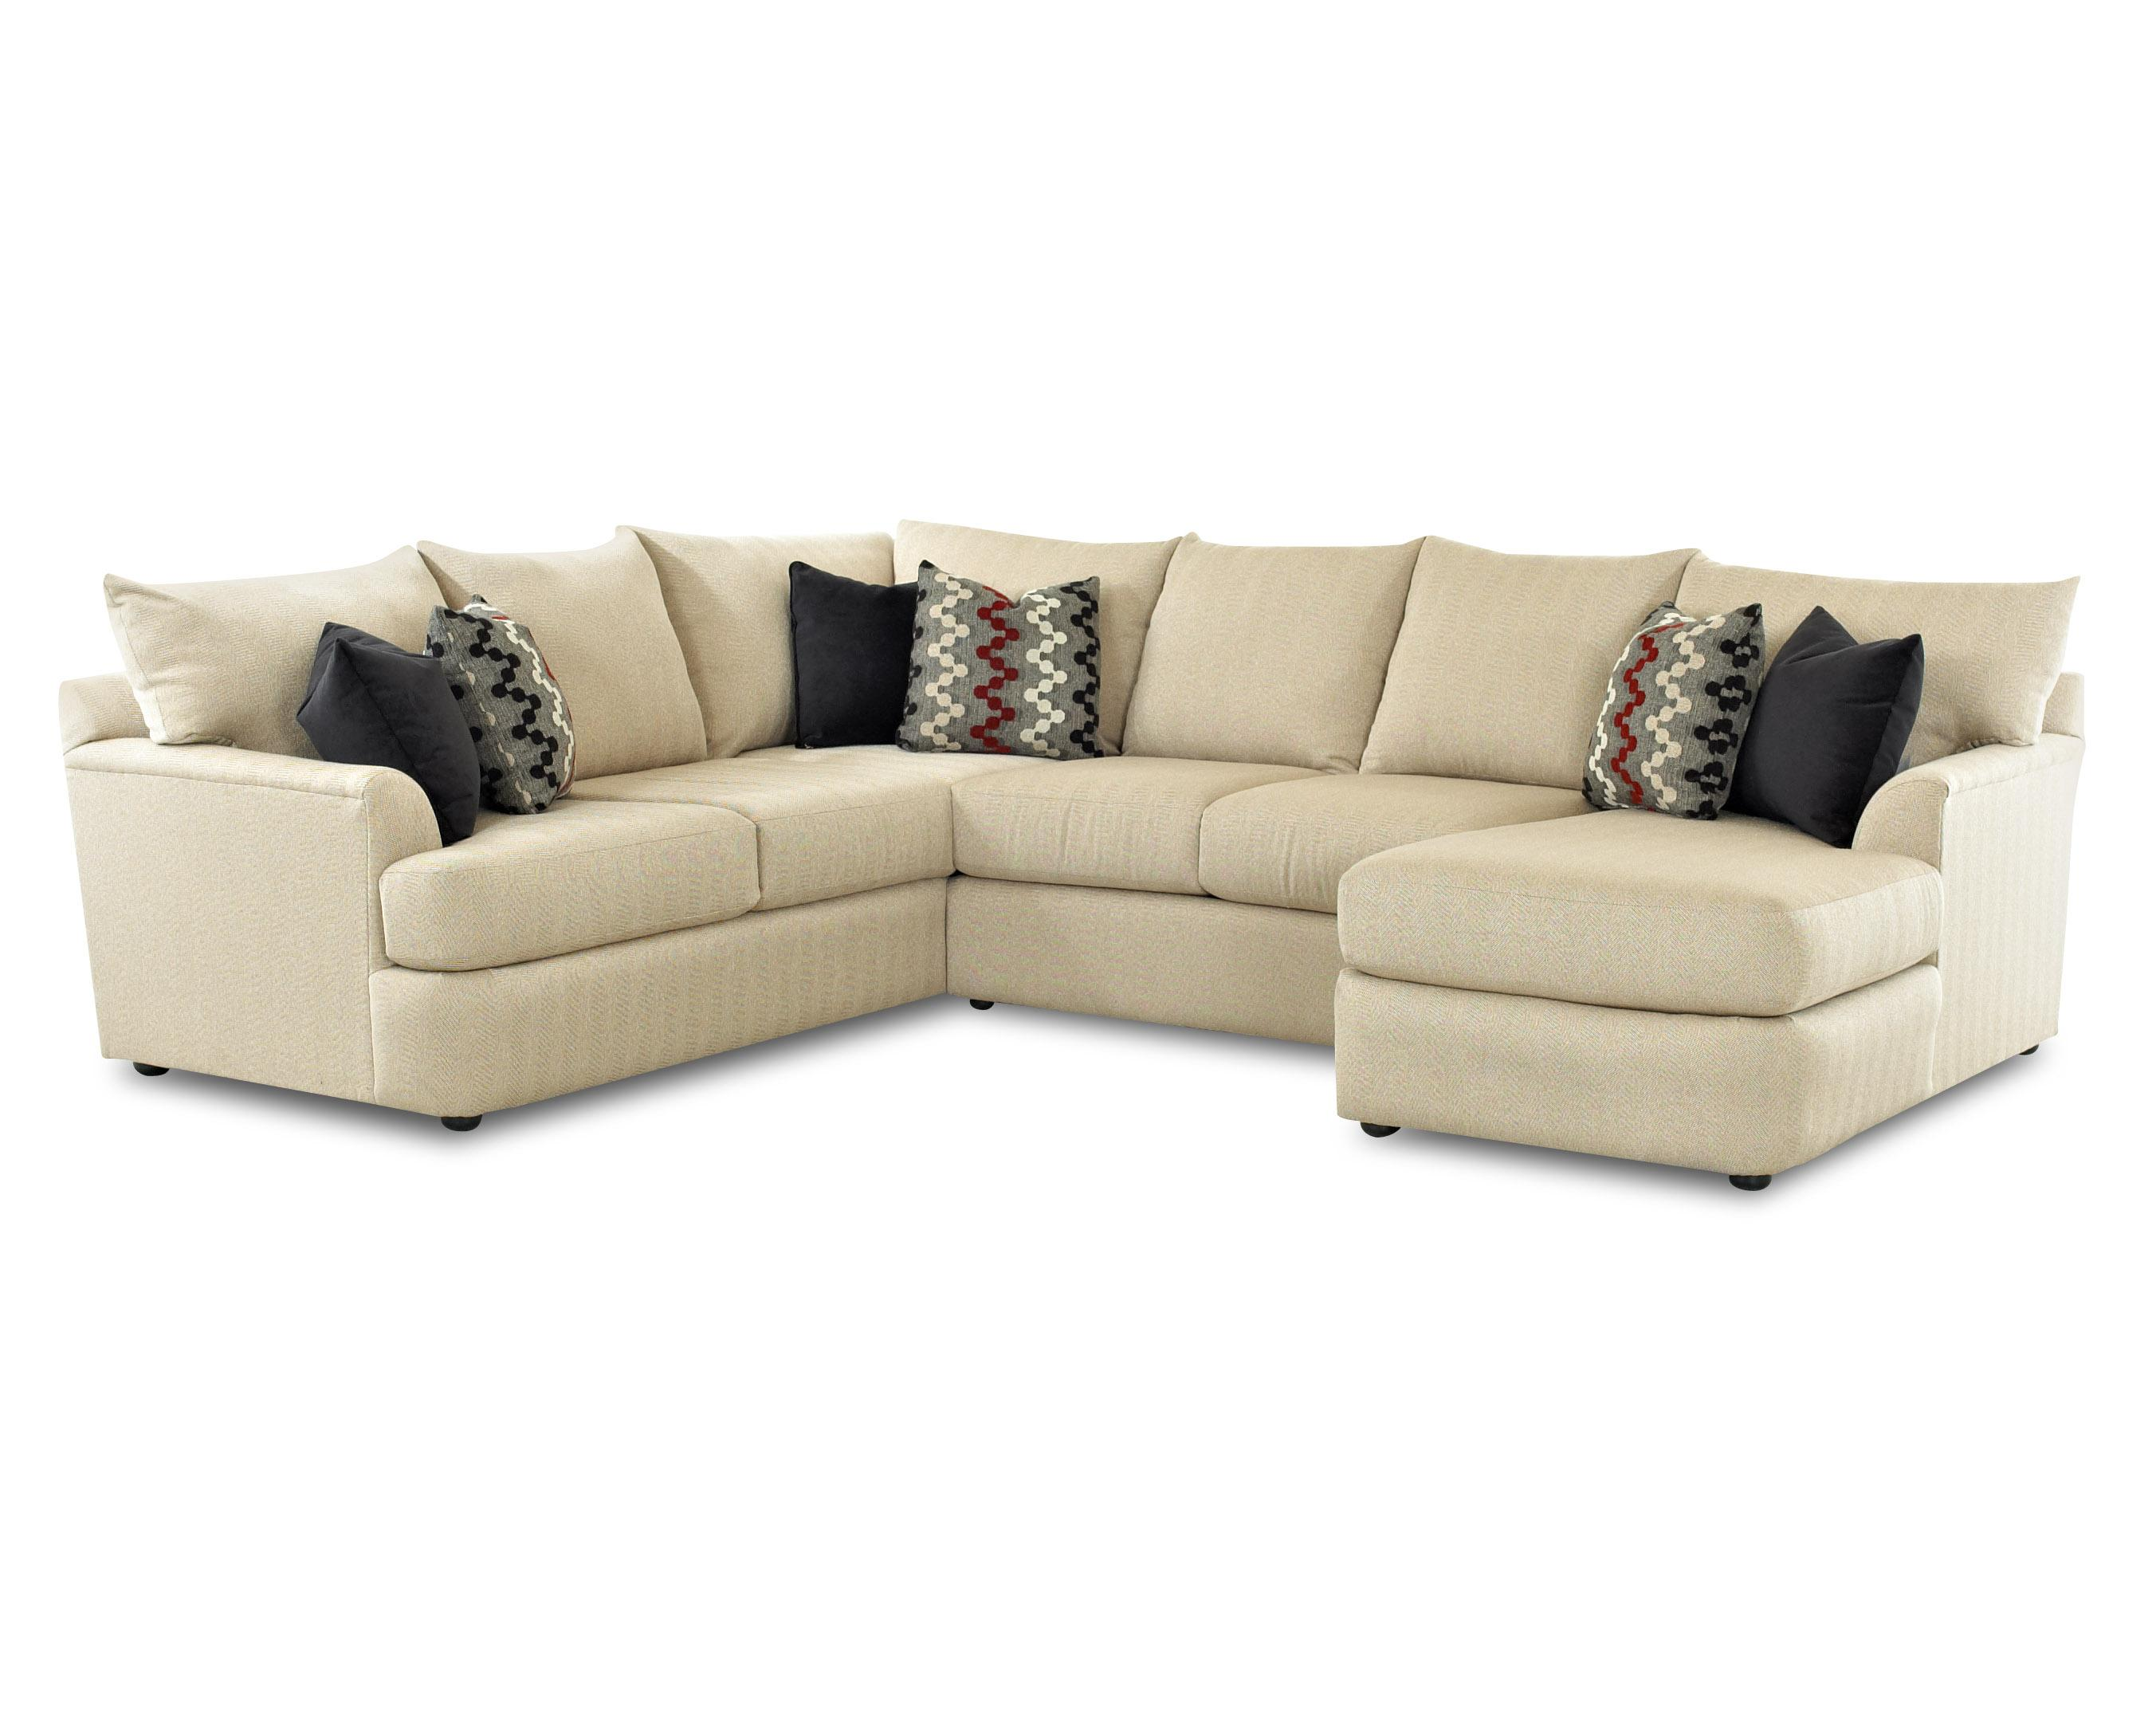 Sectional Sofa With Right Arm Chaise Lounger by Klaussner